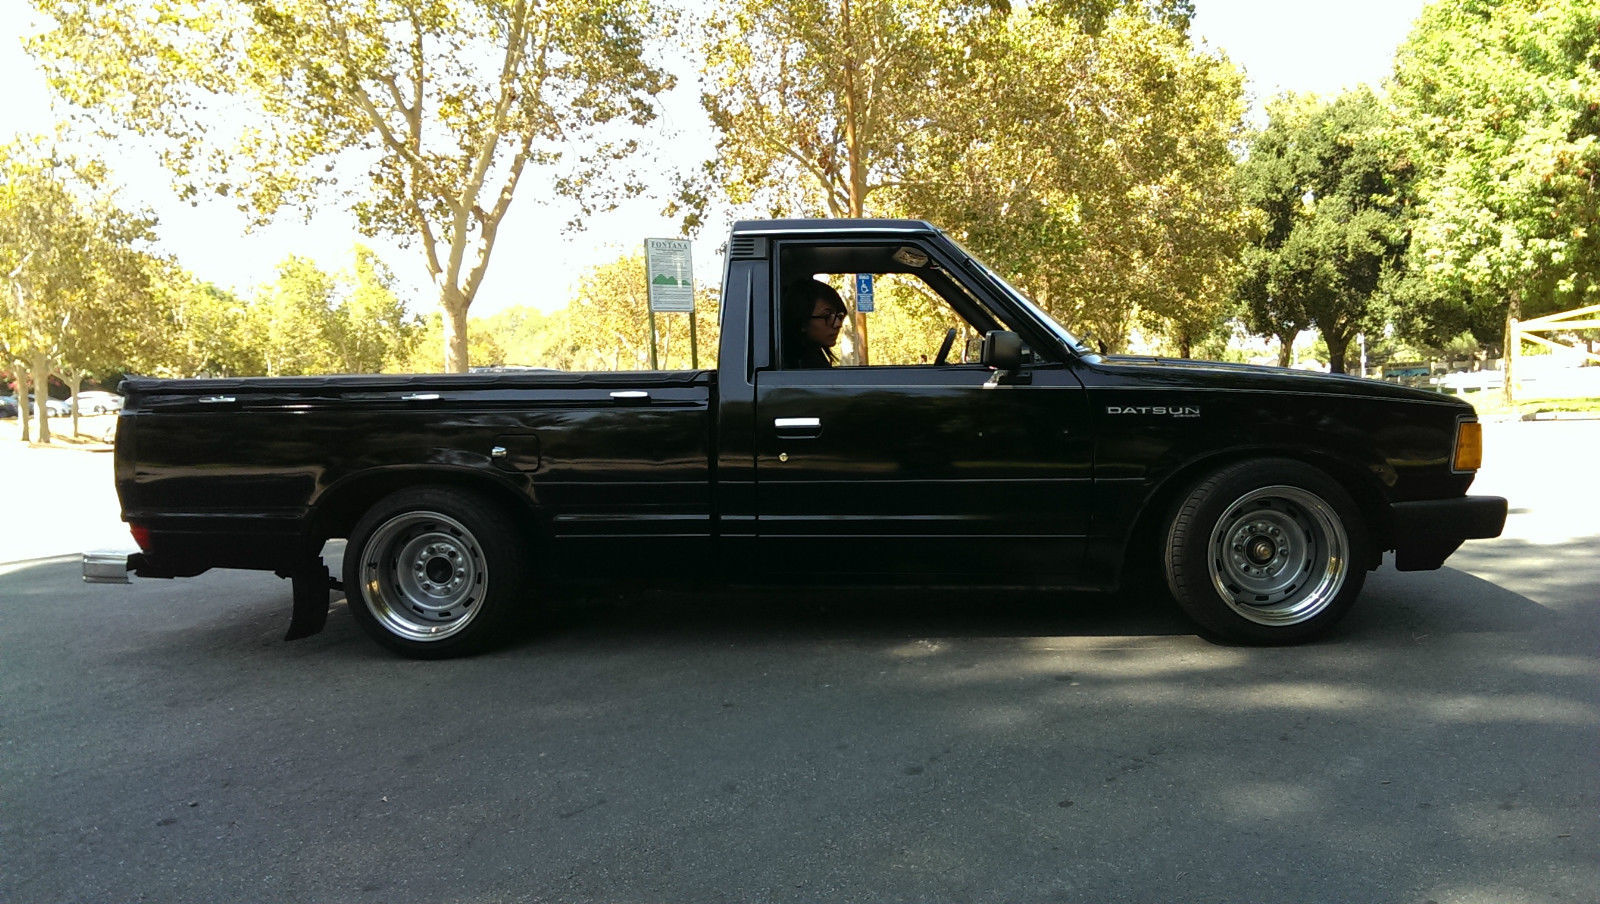 Cars For Sale By Owner In Bakersfield Ca >> Original 1980 Datsun 720 Pickup mini truck madness! - Classic Datsun Other 1980 for sale